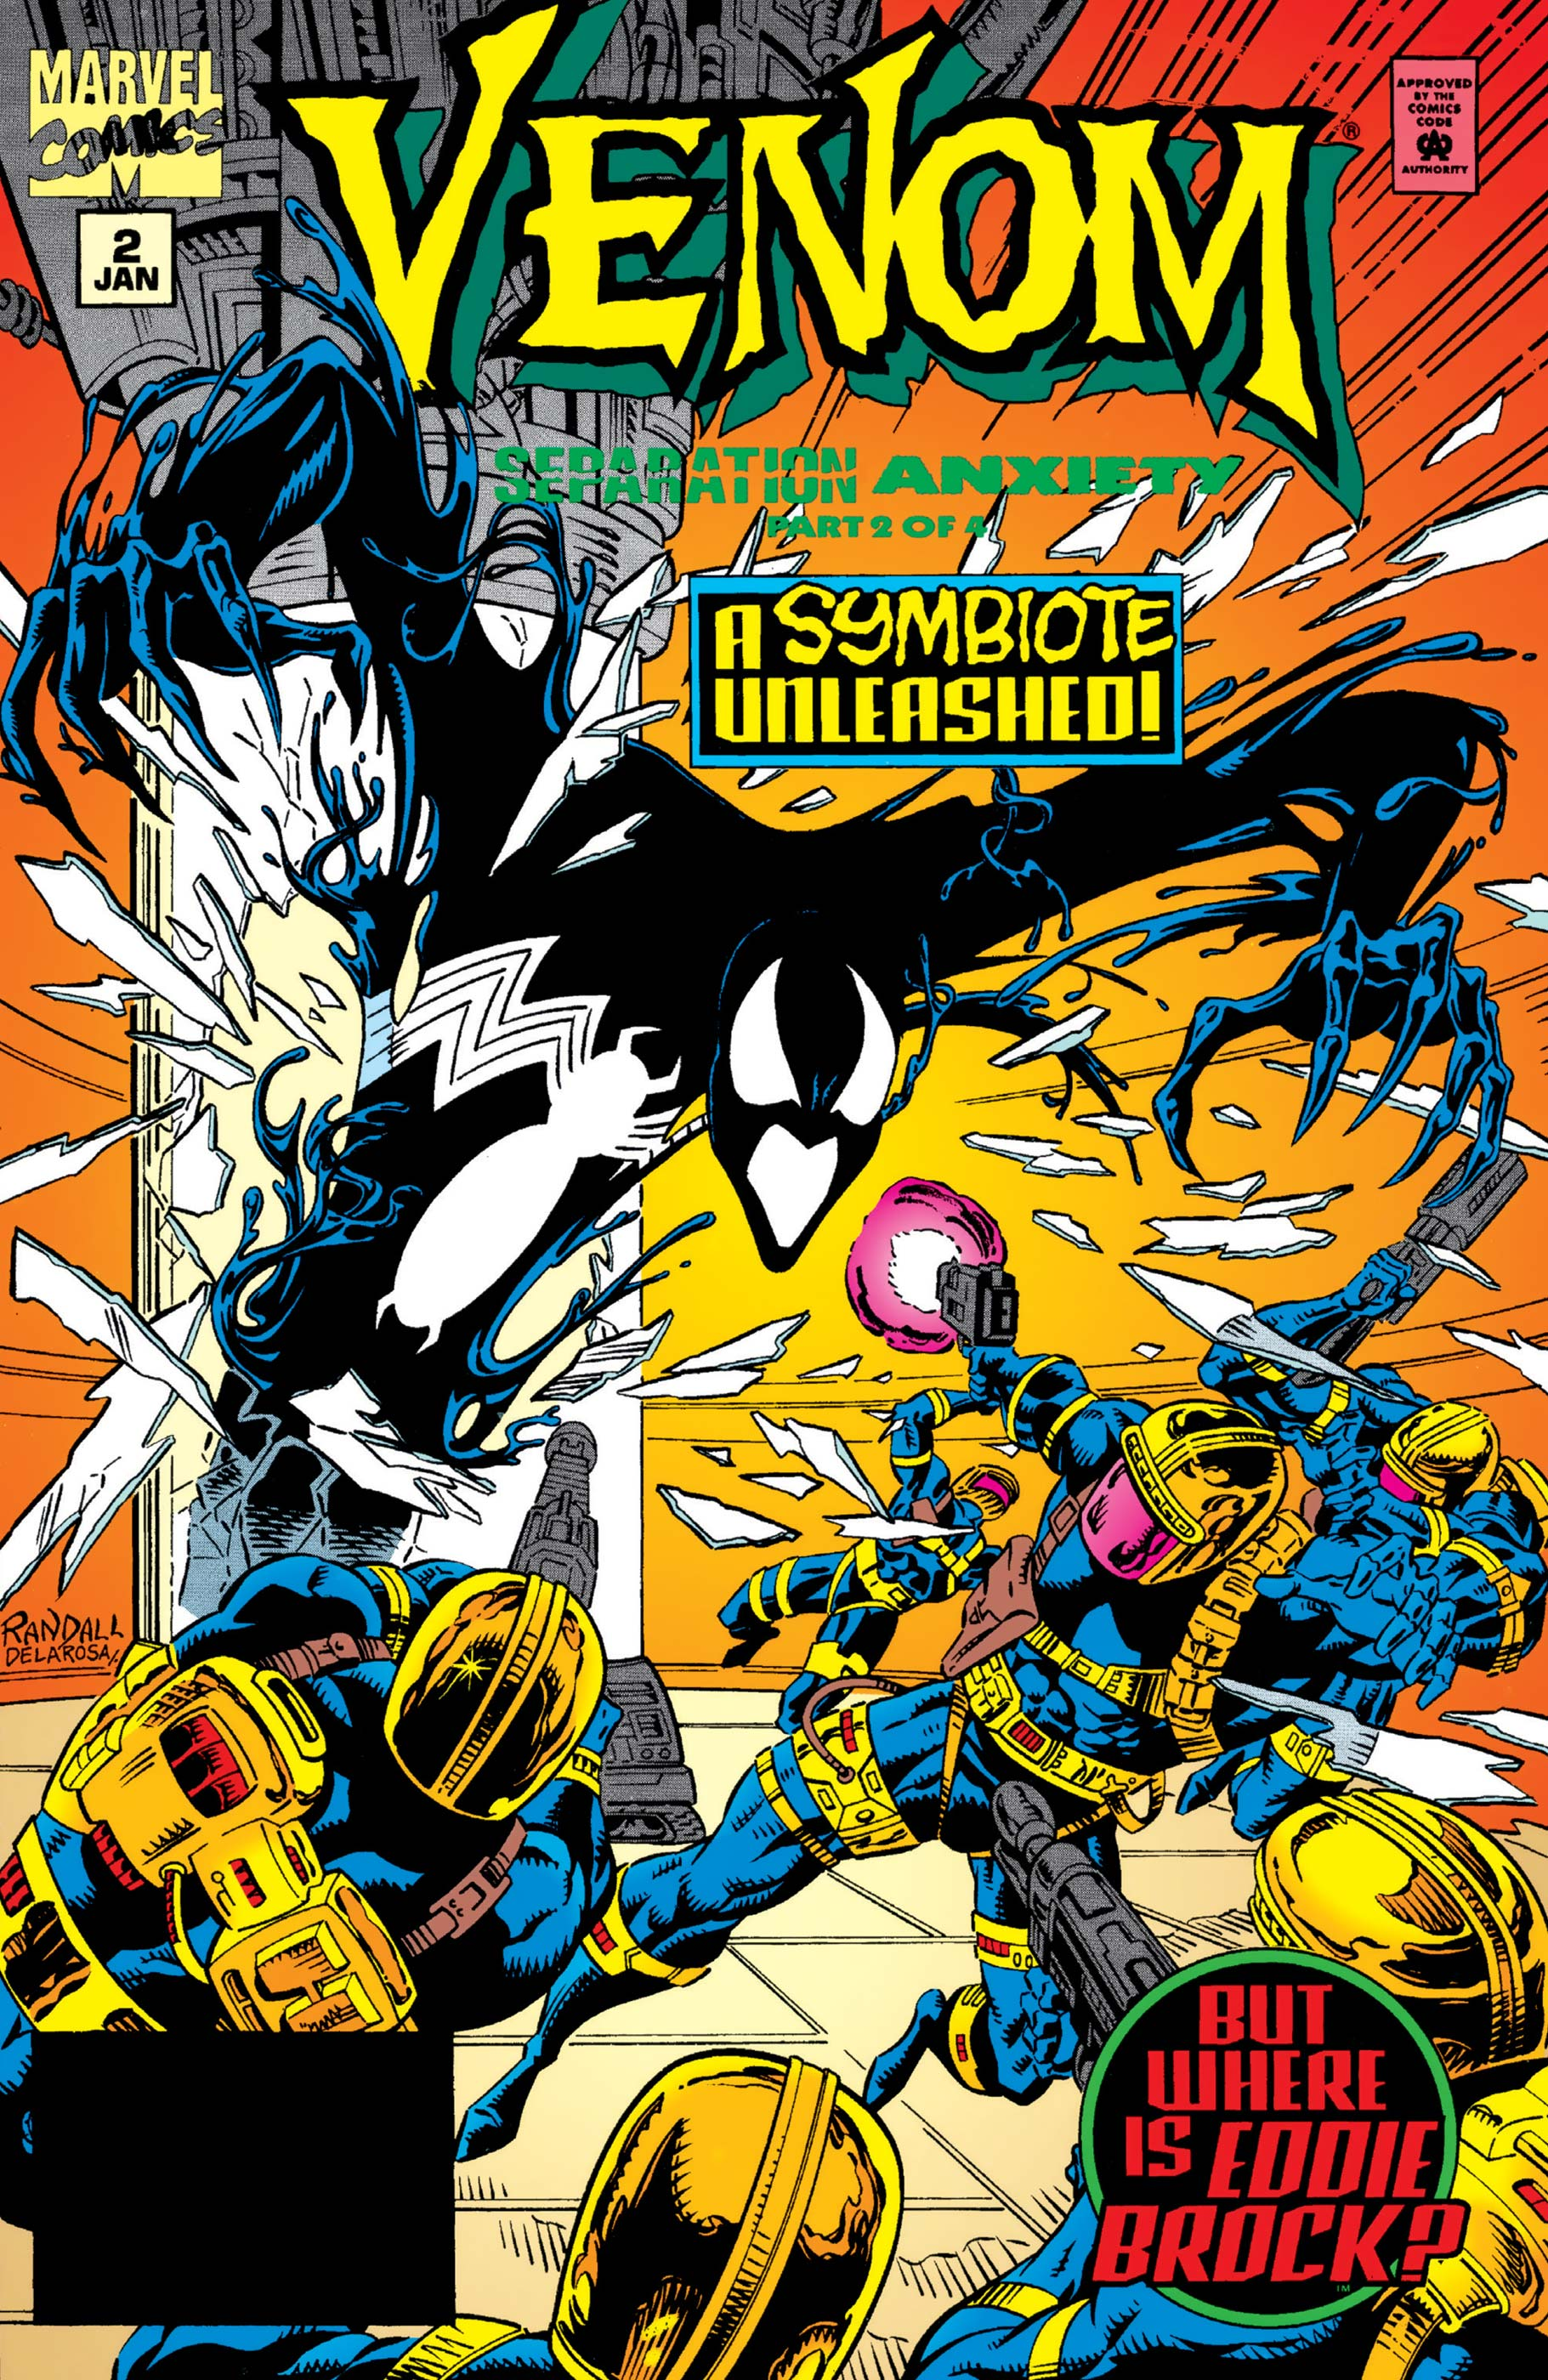 Venom: Separation Anxiety (1994) #2